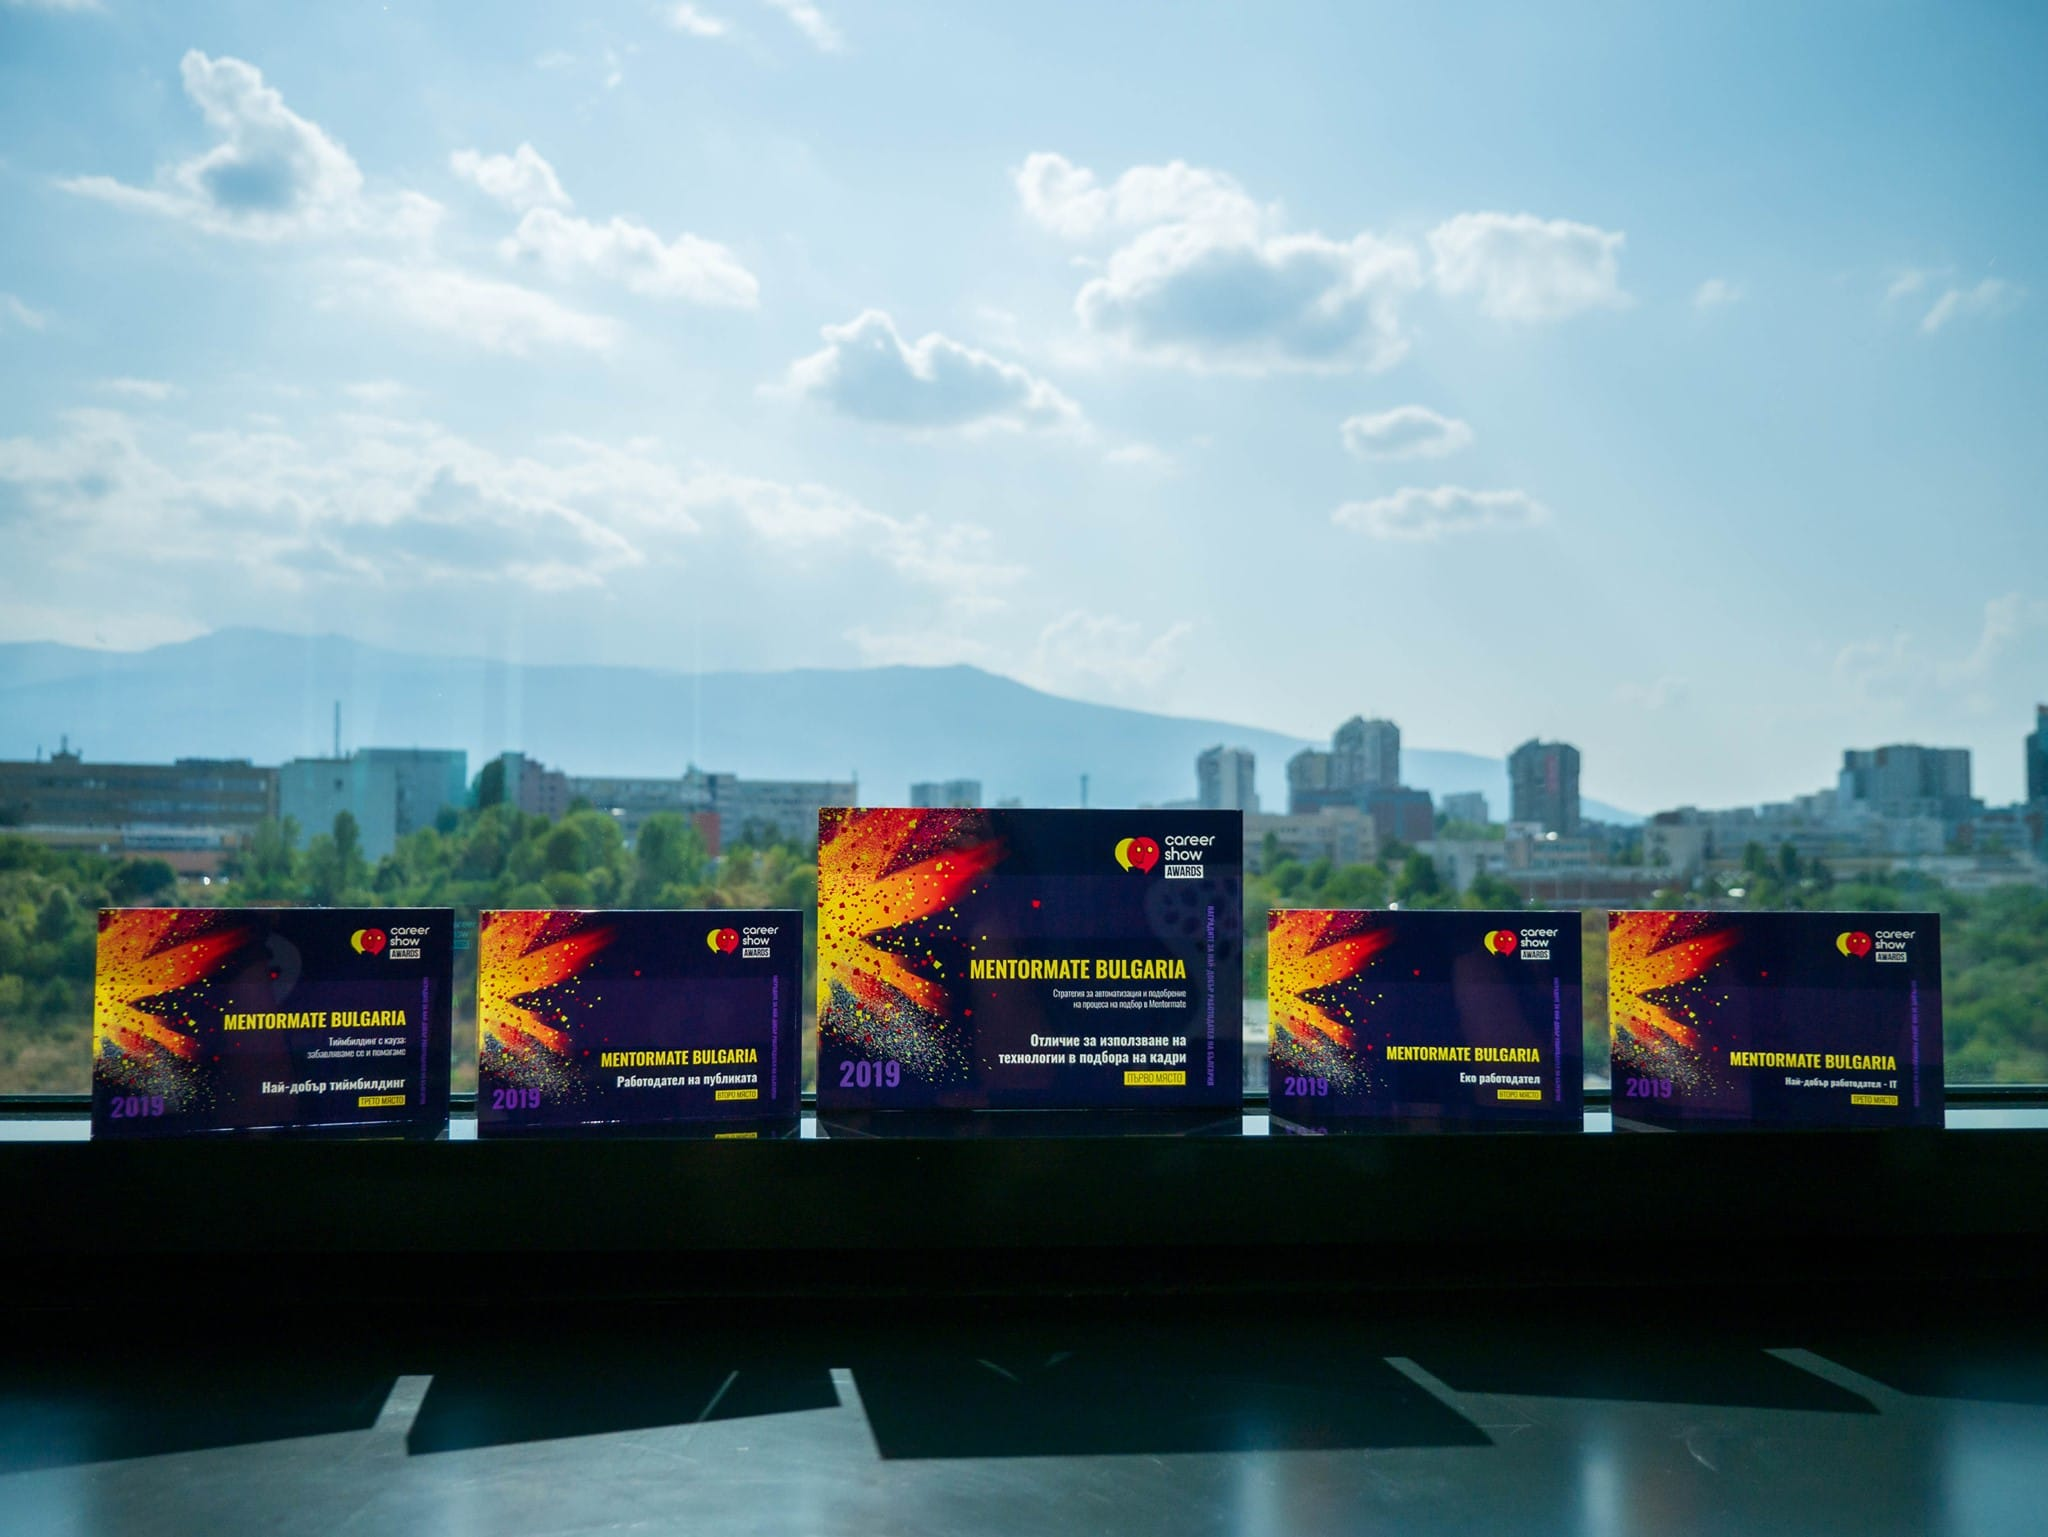 Photo of the five awards that MentorMate won in 2019 for being a top IT employer in Bulgaria